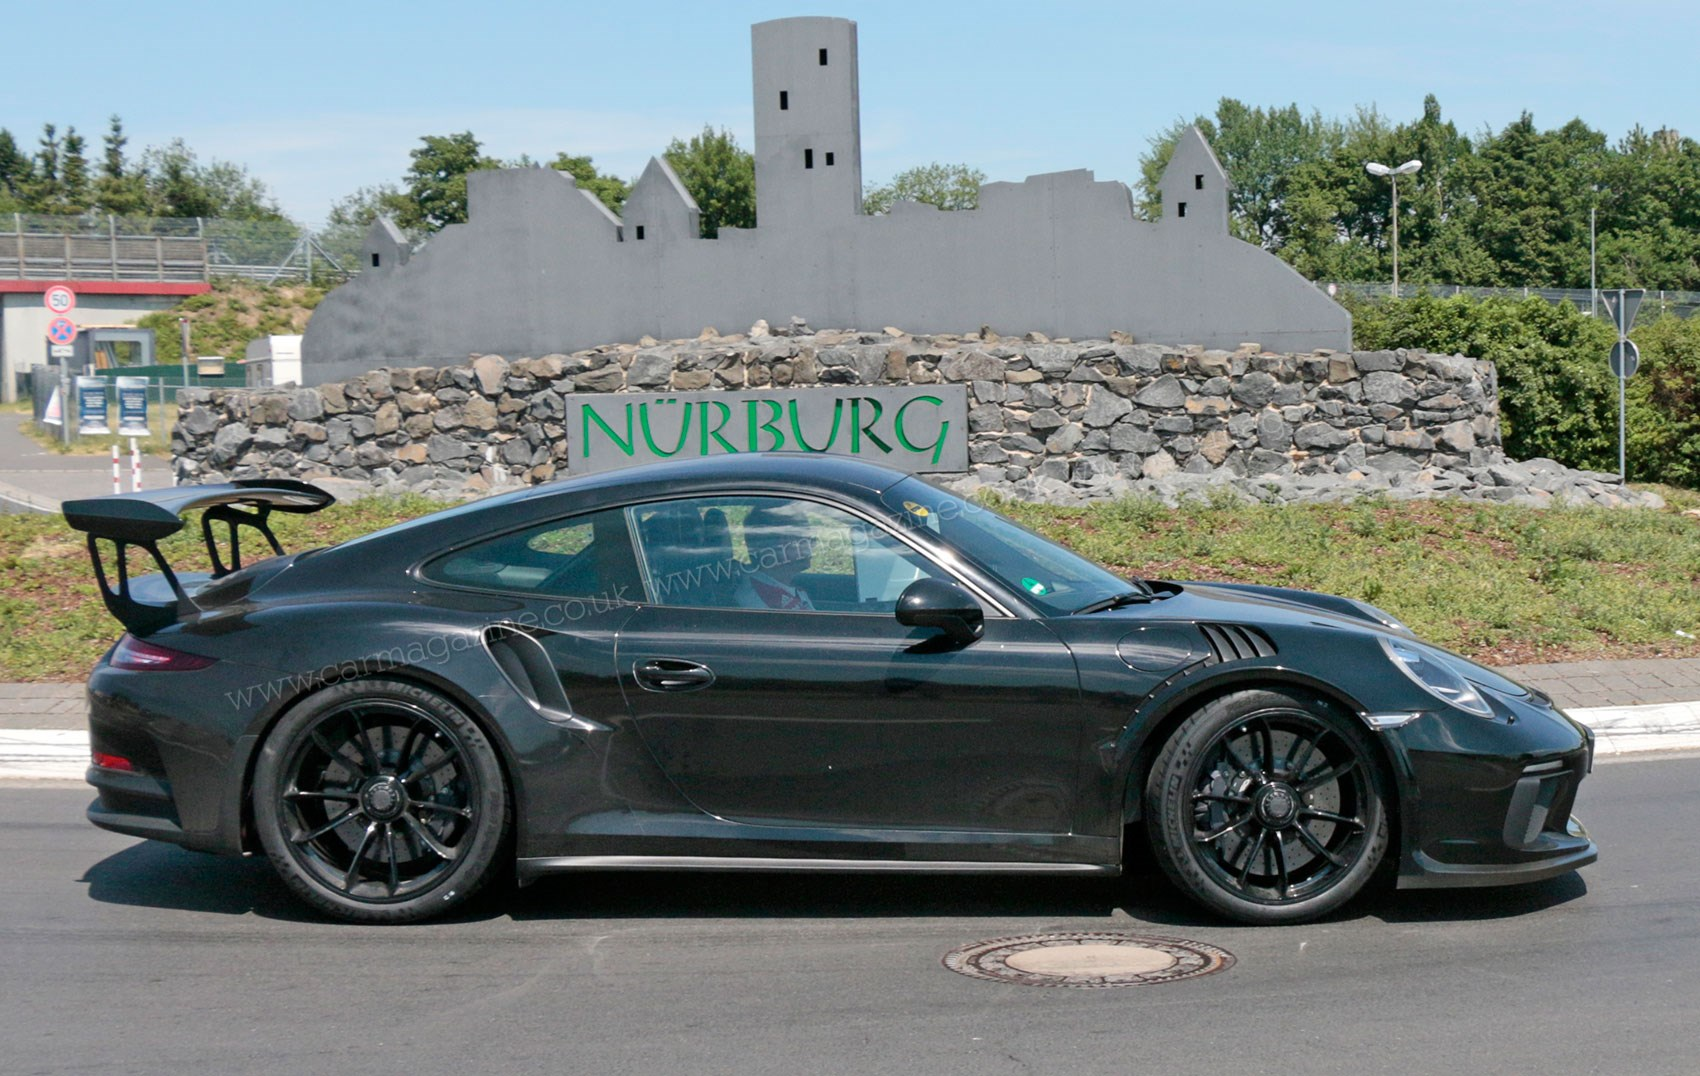 bodywork of facelifted porsche 9912 gt3 rs is peppered with cooling ducts